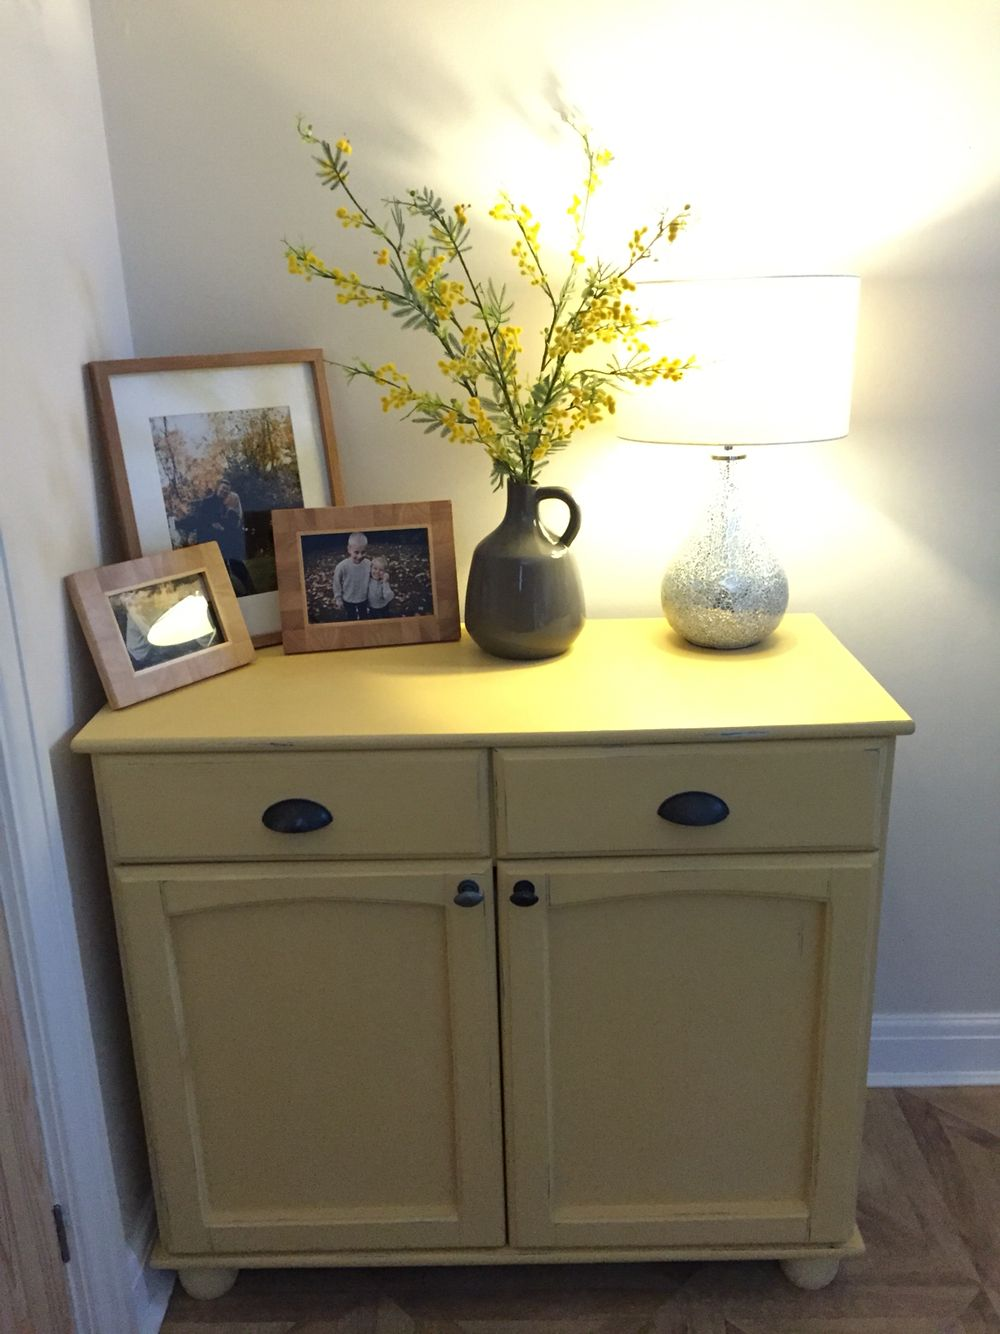 color ideas for painting furniture. Cupboard Painted In Rustoleum Mustard Chalk Paint Color Ideas For Painting Furniture E